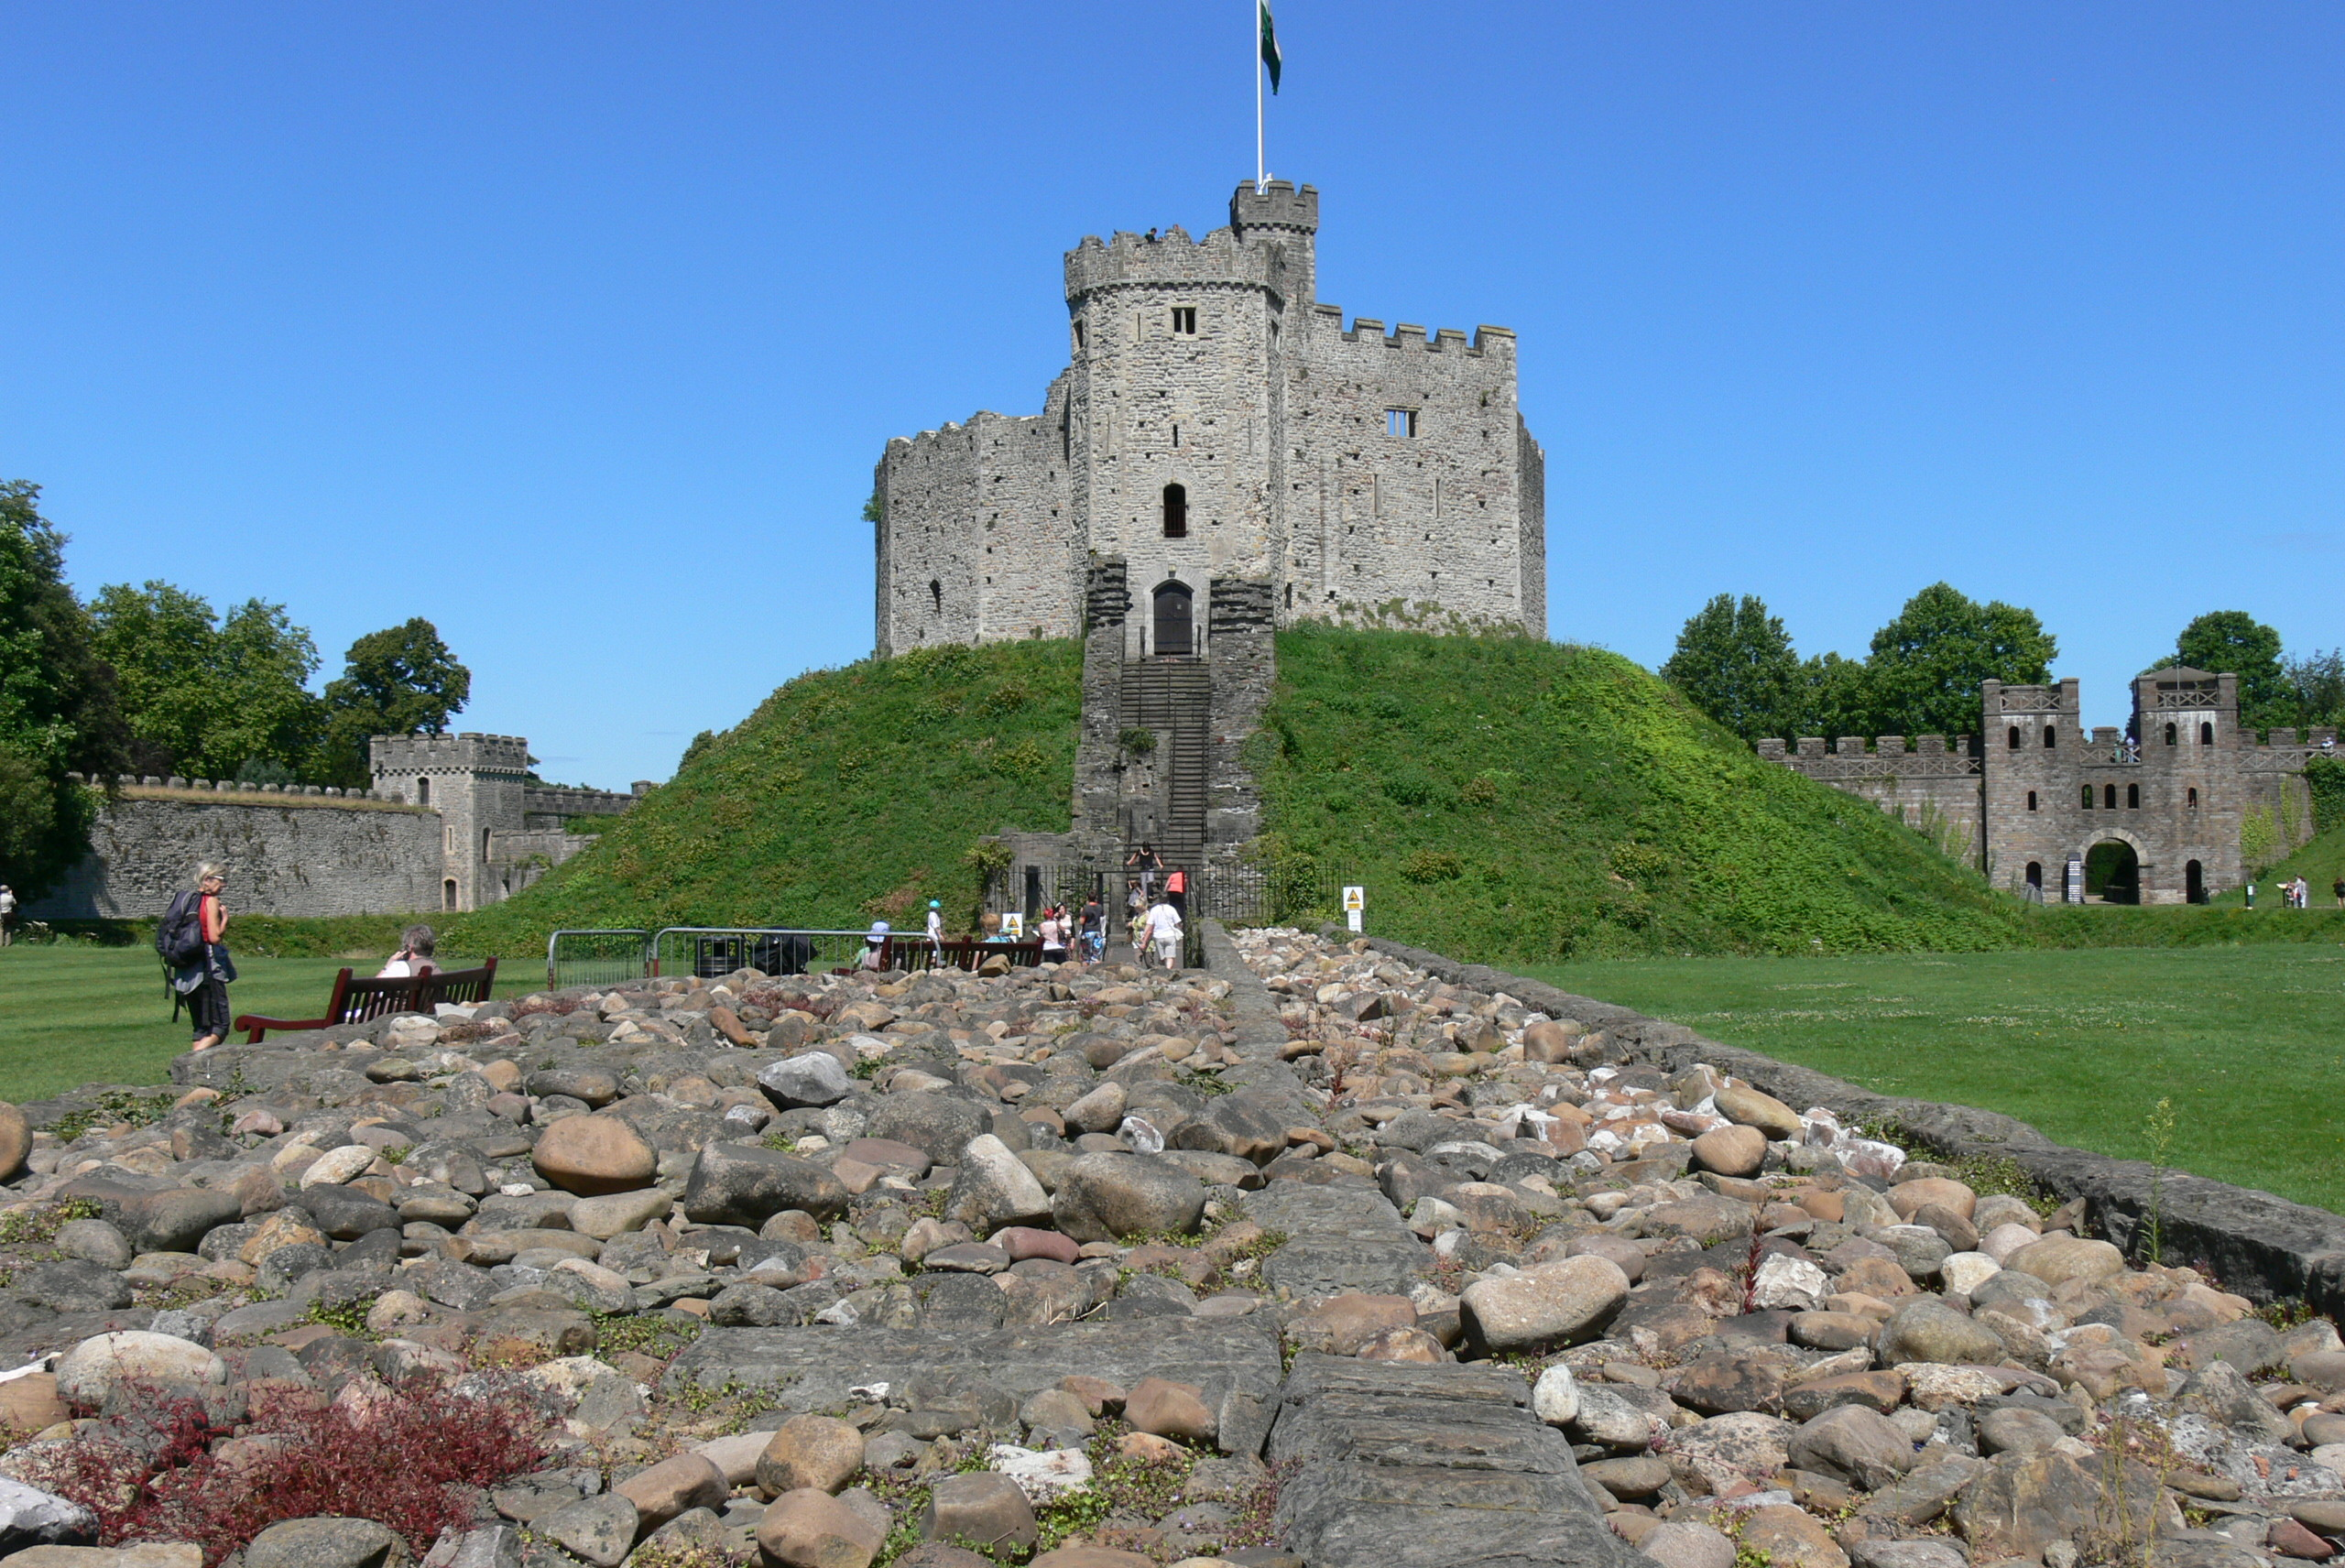 Cardiff Gothic Castle Wallpaper Travel HD Wallpapers 2560x1712